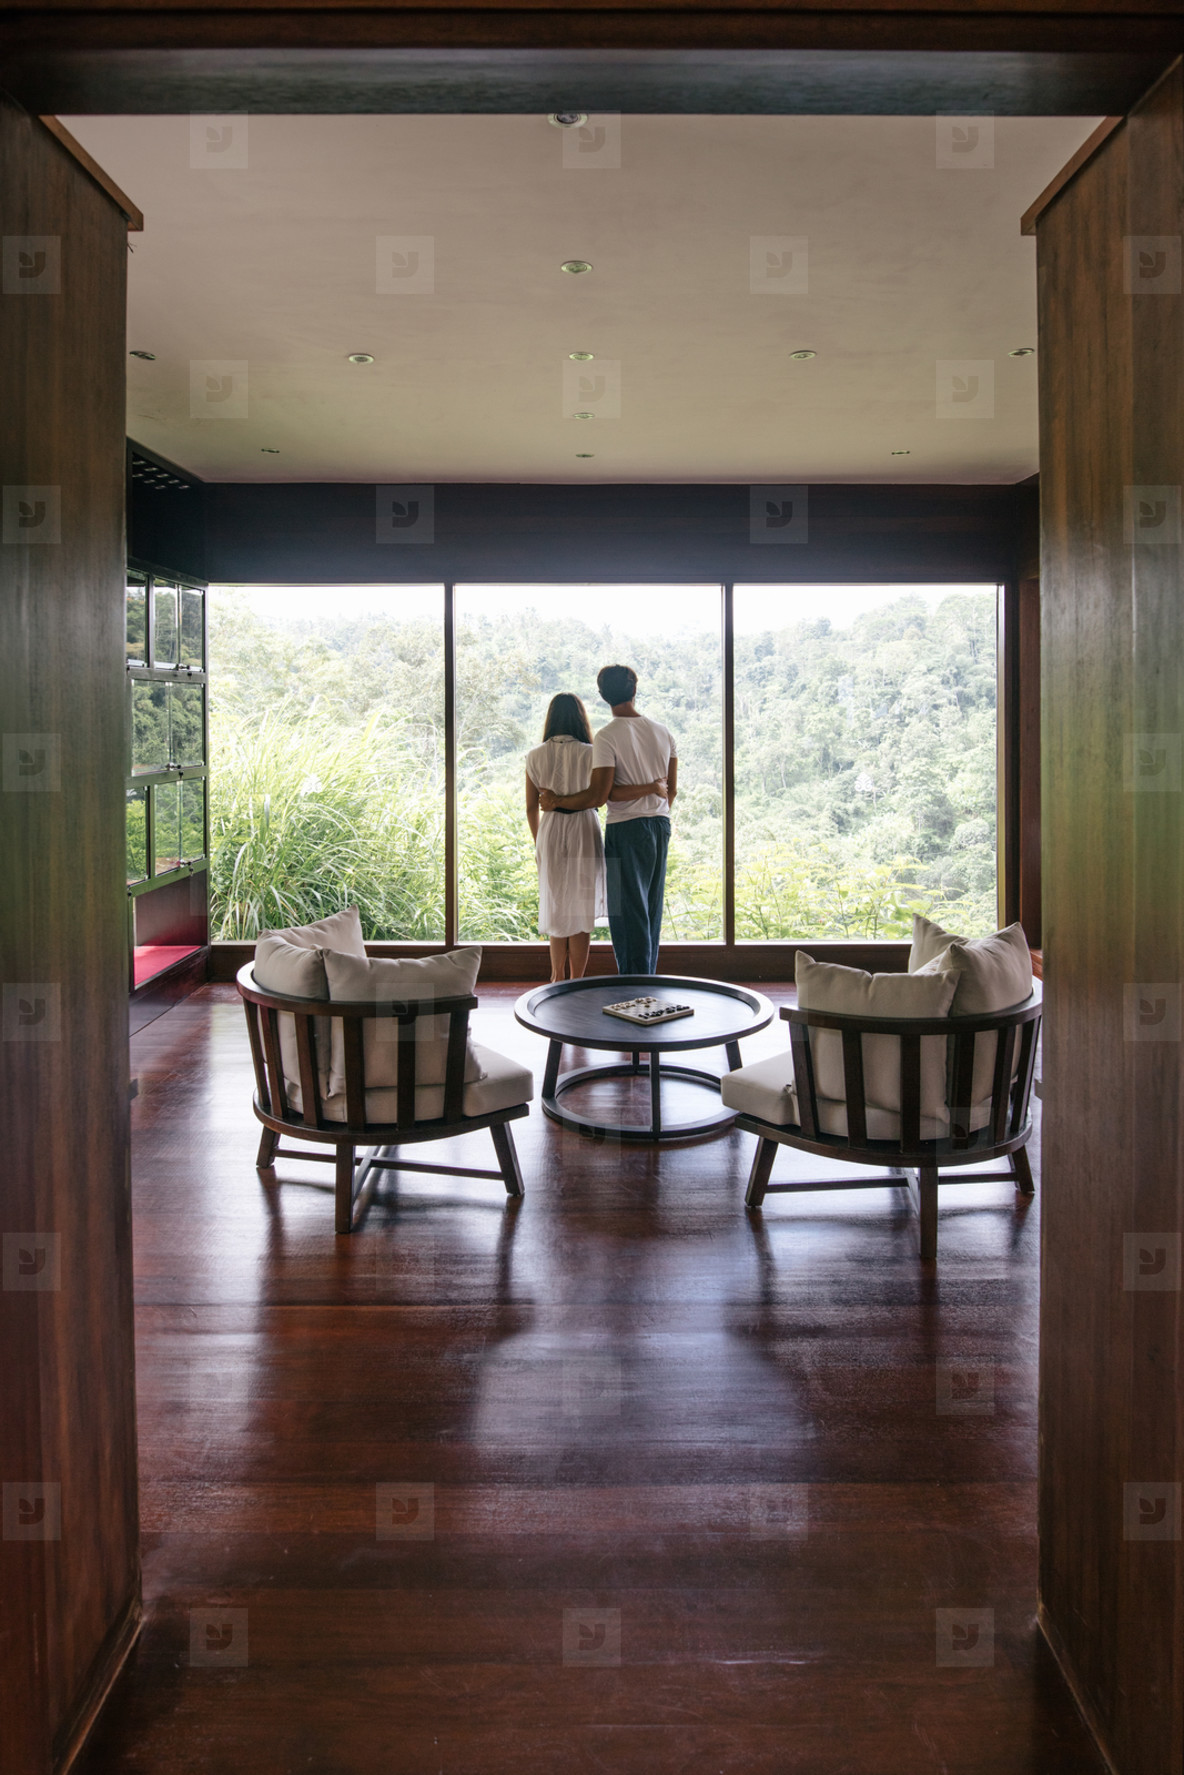 Couple in hotel room enjoying view from window